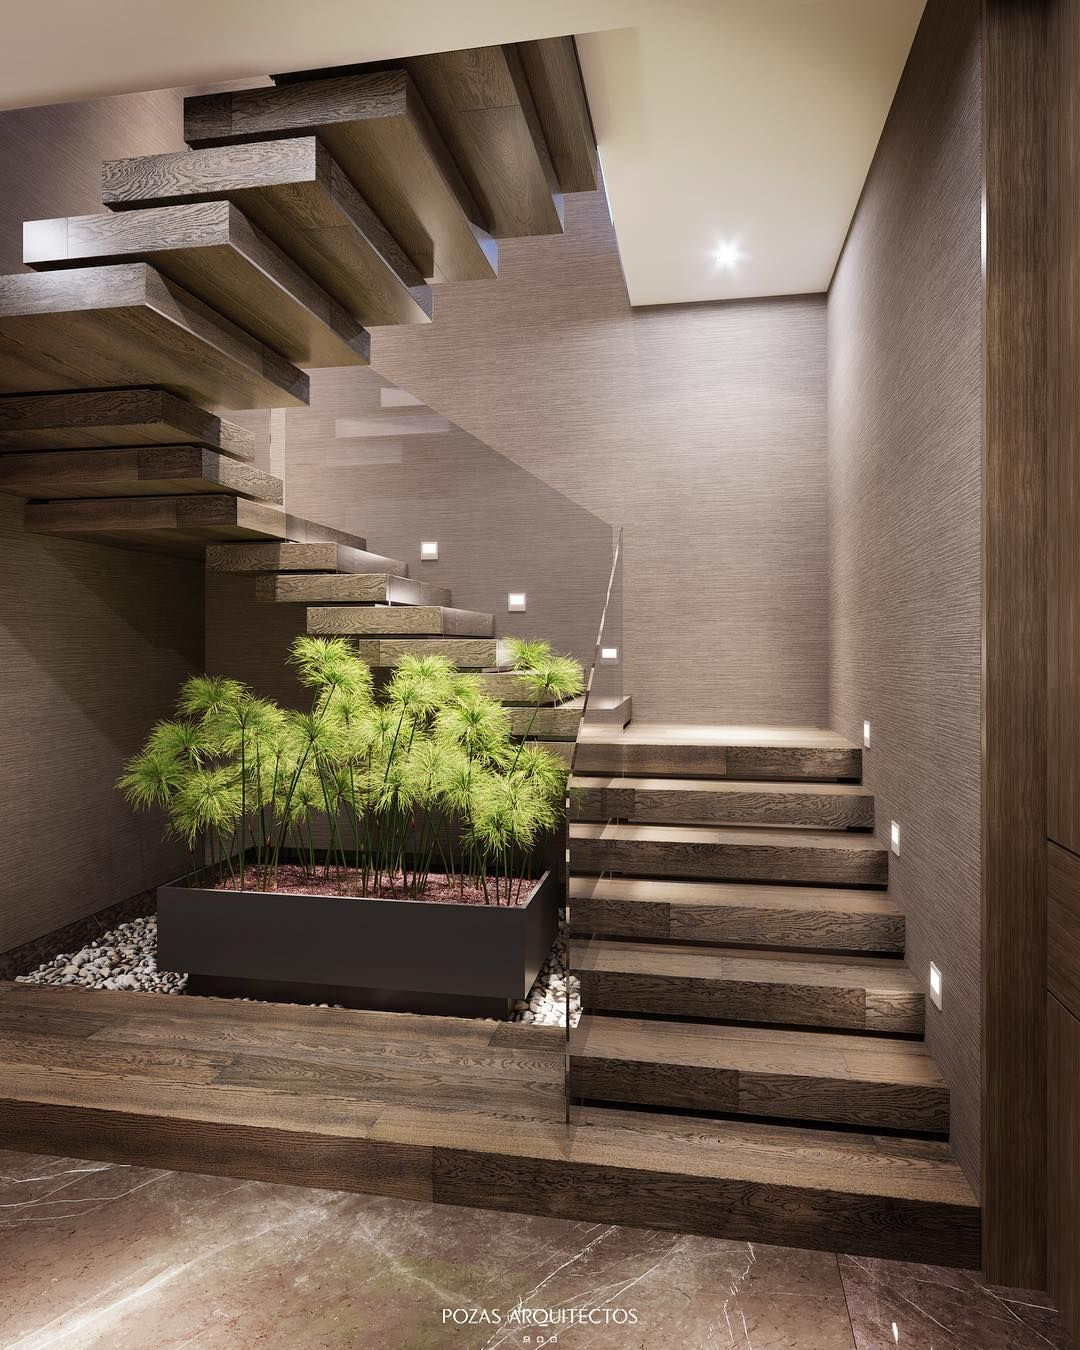 Love The Zen Feel Of The Floating Steps Around The Square Planter